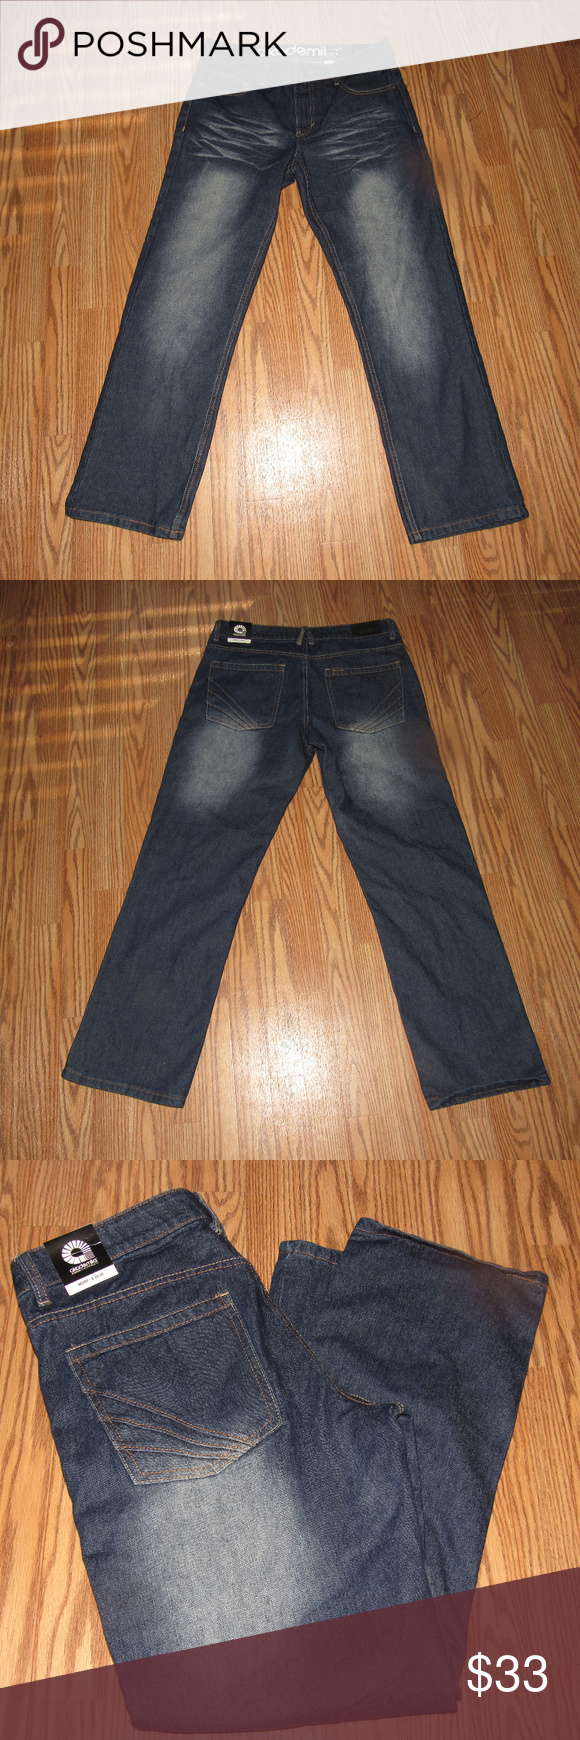 "AKADEMIKS Boys Dark Wash Jeans Size 16 AKADEMIKS Boys Dark Wash Jeans Size 16 •	Zip front with button closure •	Belt loops •	5-pocket style •	Made from 55% cotton; 25% polyester; 20% vicose •	Great condition (tag on back) •	Waist:  approx. 33"" •	Inside leg length:  approx. 29"" Akademiks Bottoms Jeans"